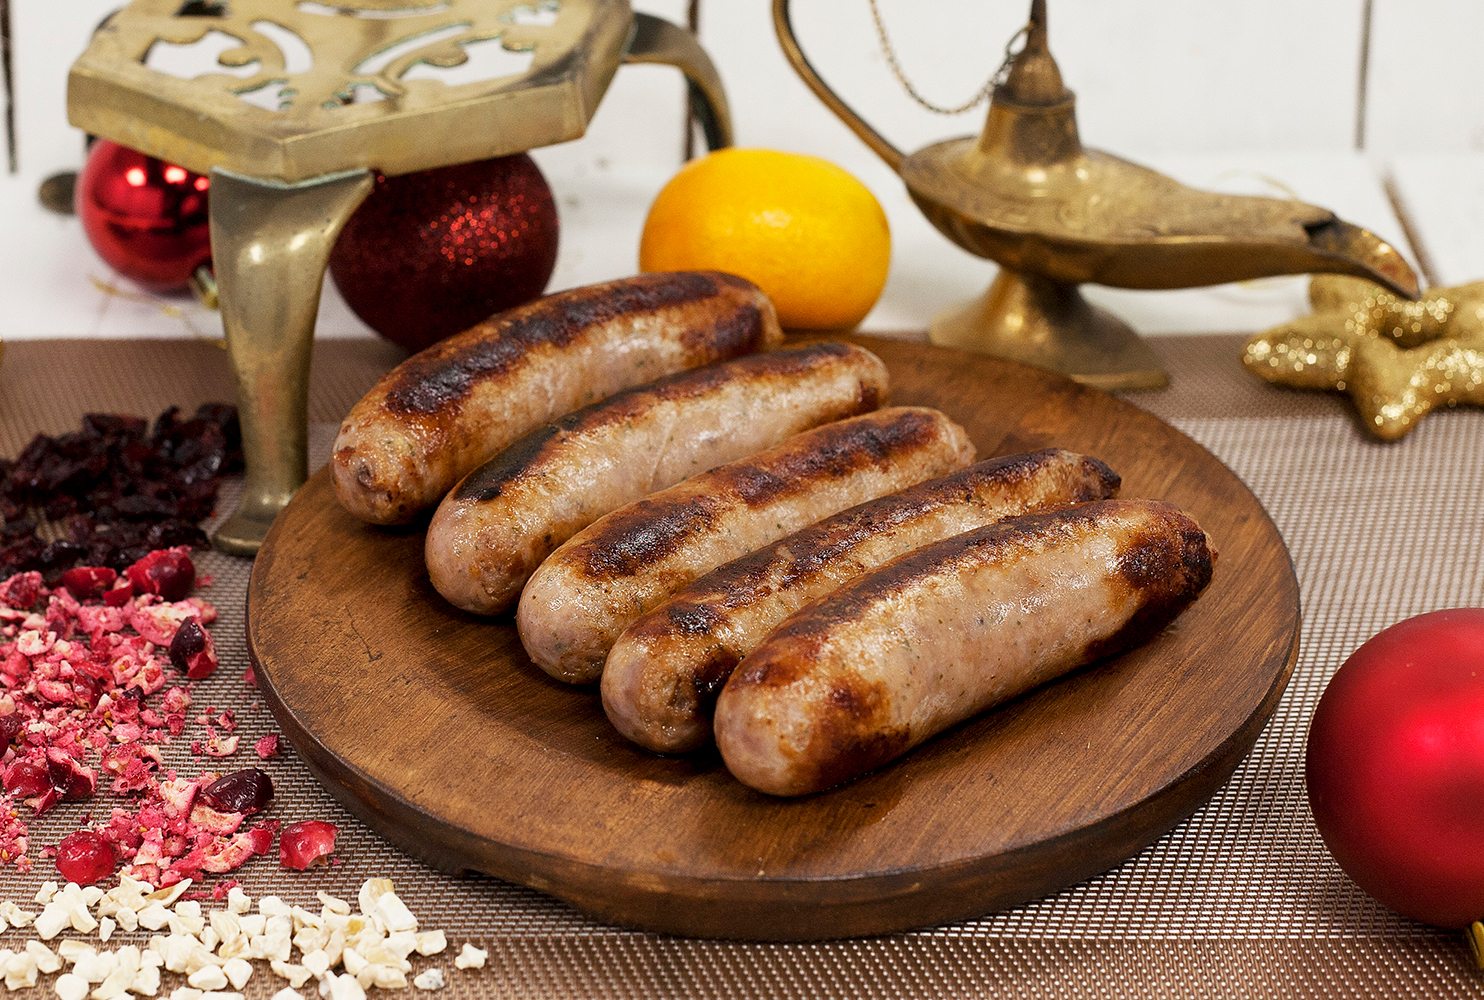 COUNTRY FAYRE CHESTNUT CRANBERRY & ORANGE SAUSAGE MIX